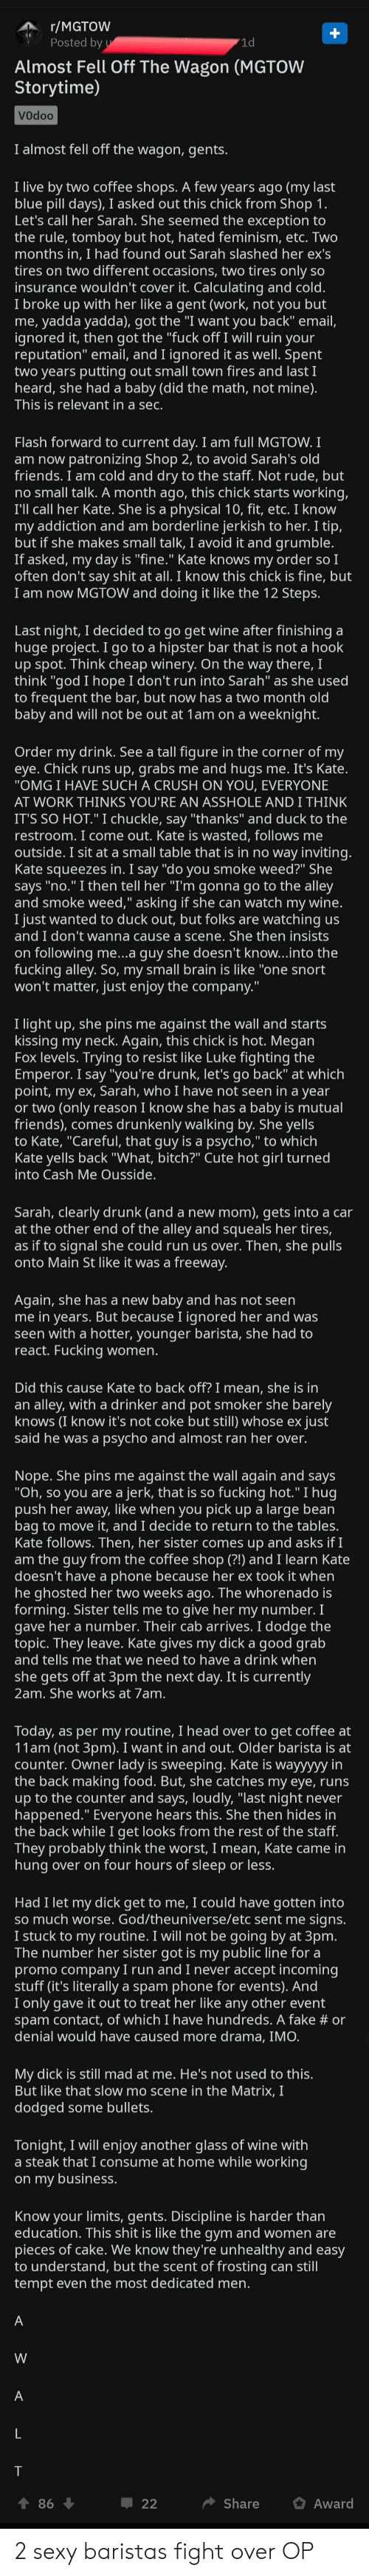 """Bitch, Crush, and Cute: r/MGTOW  Posted by  1d  Almost Fell Off The Wagon (MGTOW  Storytime)  Vodoo  I almost fell off the wagon, gents.  I live by two coffee shops. A few years ago (my last  blue pill days), I asked out this chick from Shop 1.  Let's call her Sarah. She seemed the exception to  the rule, tomboy but hot, hated feminism, etc. Two  months in, I had found out Sarah slashed her ex's  tires on two different occasions, two tires only so  insurance wouldn't cover it. Calculating and cold.  I broke up with her like a gent (work, not you but  me, yadda yadda), got the """"I want you back"""" email,  ignored it, then got the """"fuck off I will ruin your  reputation"""" email, and I ignored it as well. Spent  two years putting out small town fires and last I  heard, she had a baby (did the math, not mine)  This is relevant in a sec.  Flash forward to current day. I am full MGTOW. I  patronizing Shop 2, to avoid Sarah's old  friends. I am cold and dry to the staff. Not rude, but  no small talk. A month ago, this chick starts working,  I'll call her Kate. She is a physical 10, fit, etc. I know  borderline jerkish to her. I tip,  but if she makes small talk, I avoid it and grumble.  If asked, my day is """"fine."""" Kate knows my order so I  often don't say shit at all. I know this chick is fine, but  I am now MGTOW and doing it like the 12 Steps.  am now  my addiction and am  Last night, I decided to go get wine after finishing a  huge project. I go to a hipster bar that is not a hook  up spot. Think cheap winery. On the way there, I  think """"god I hope I don't run into Sarah"""" as she used  to frequent the bar, but now has a two month old  baby and will not be out at 1am on a weeknight.  Order my drink. See a tall figure in the corner of my  eye. Chick runs up, grabs me and hugs me. It's Kate.  """"OMGI HAVE SUCH A CRUSH ON YOU, EVERYONE  AT WORK THINKS YOU'RE AN ASSHOLE ANDI THINK  IT'S SO HOT."""" I chuckle, say """"thanks"""" and duck to the  restroom. I come out. Kate is wasted, follows m"""